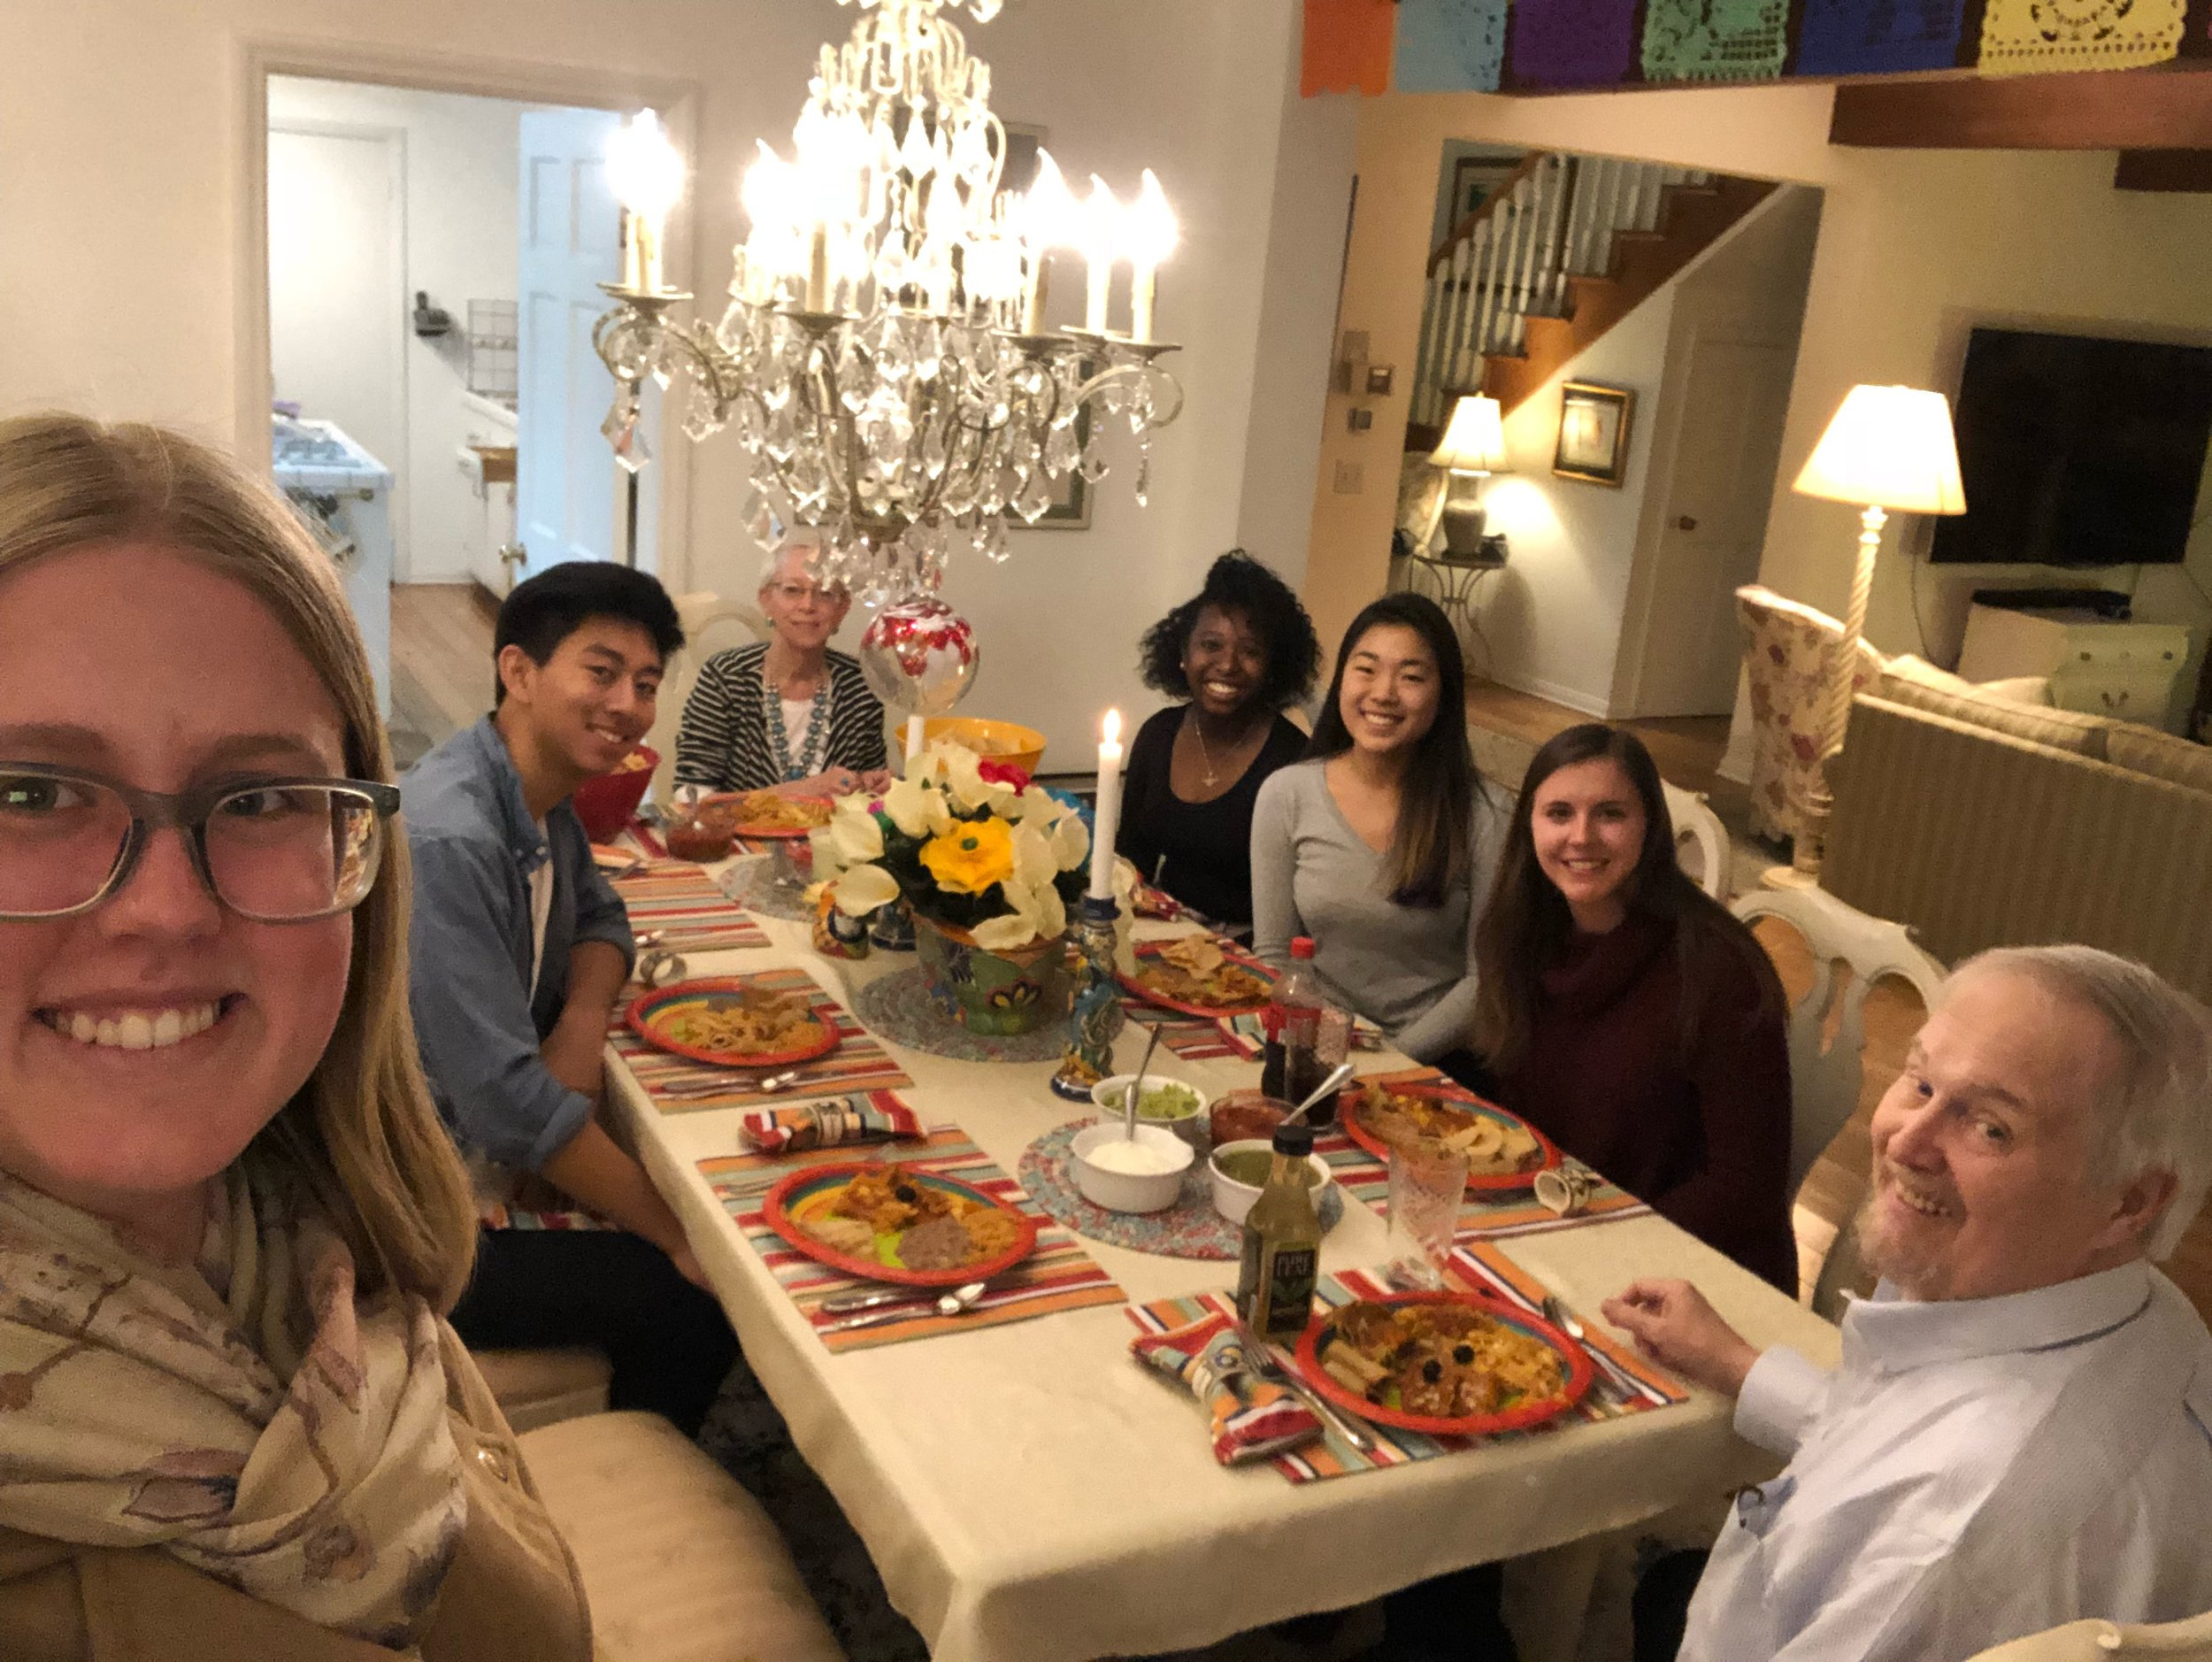 Bill (BS '68) and Deb Bloom hosted 5 undergraduate students for dinner at their home in Altadena on Saturday, February 23, 2019.